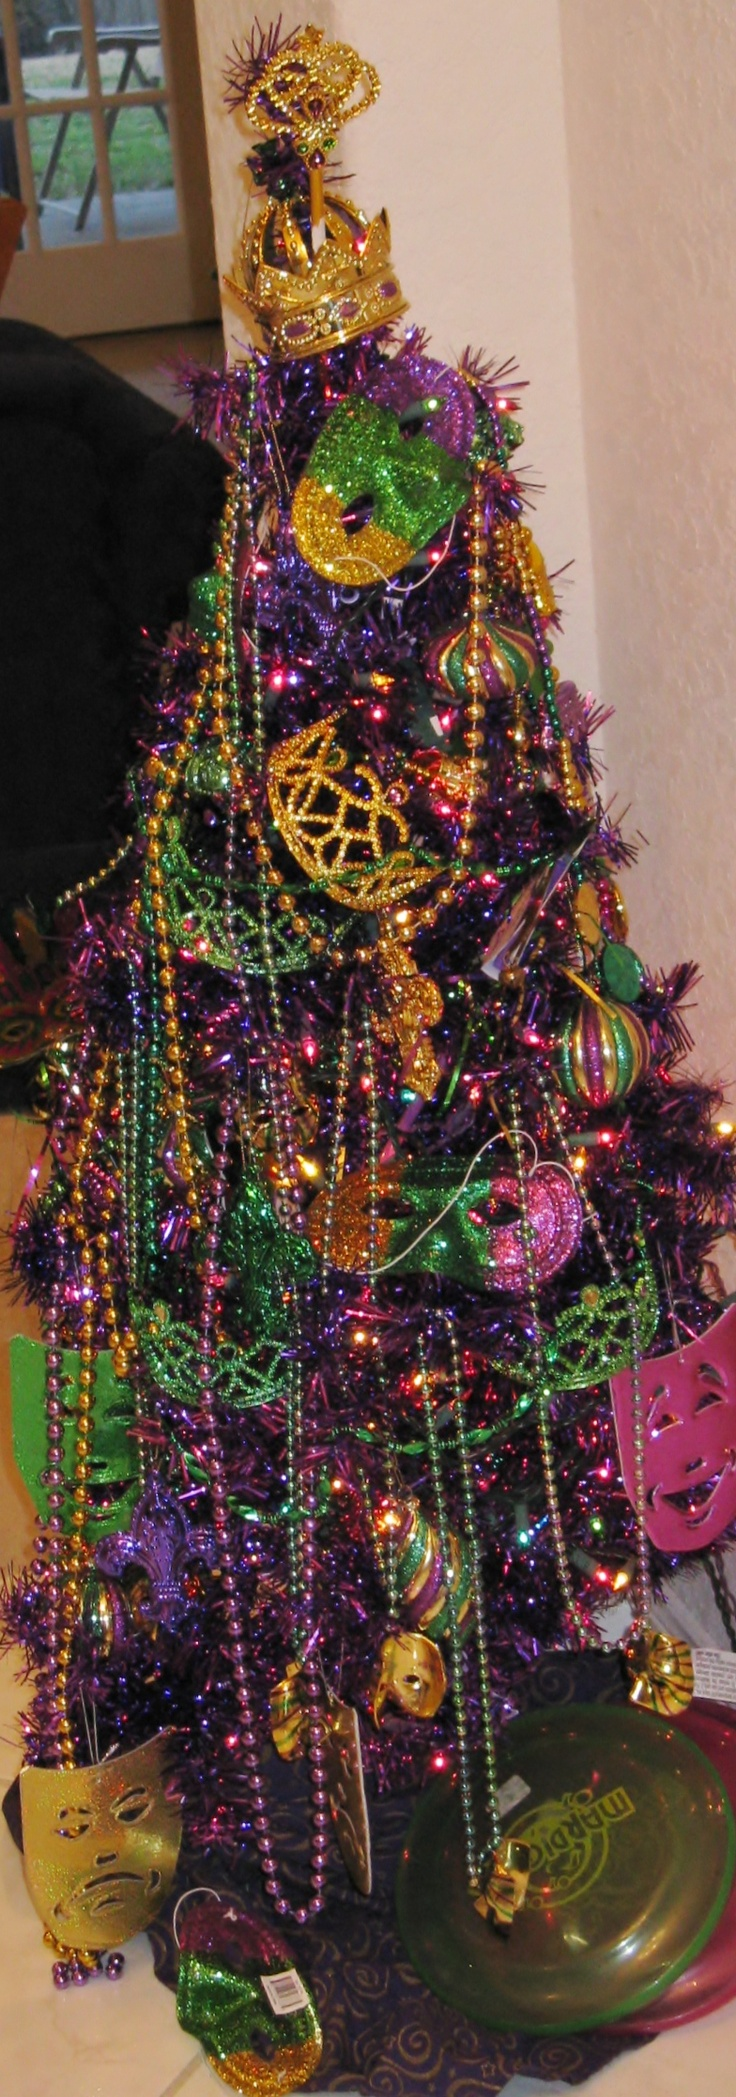 Mardi Gras tree: Started with a purple foil tree with purple lights, added pgg lights, and just decorated it with balls, beads, masks, and rope.